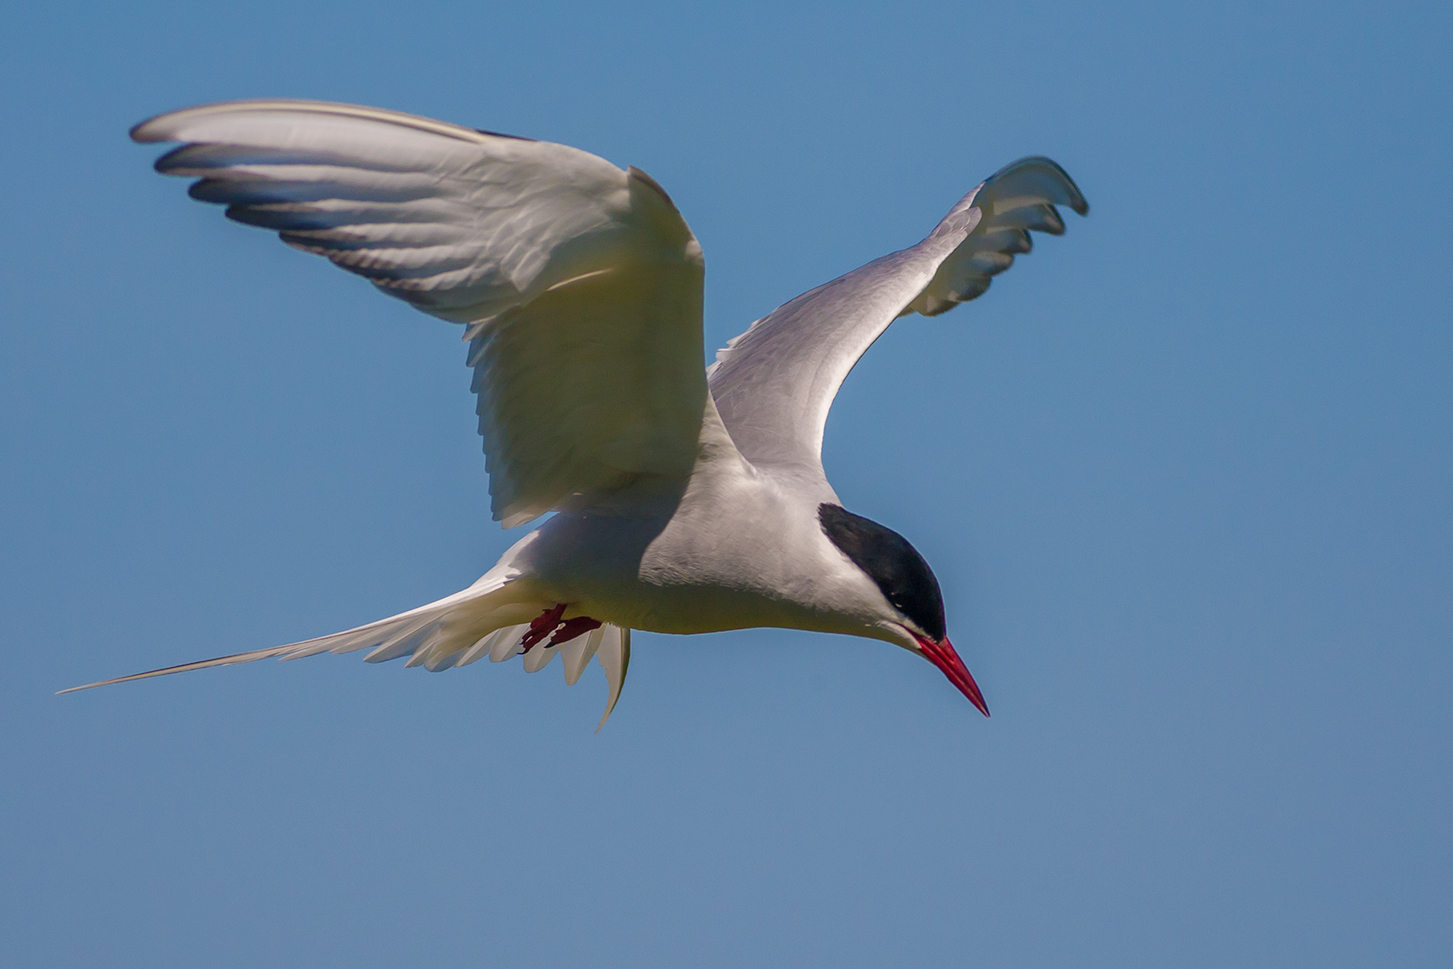 Arctic Tern . 2014. Tony Smith on  Flickr . Under  Creative Commons 2.0